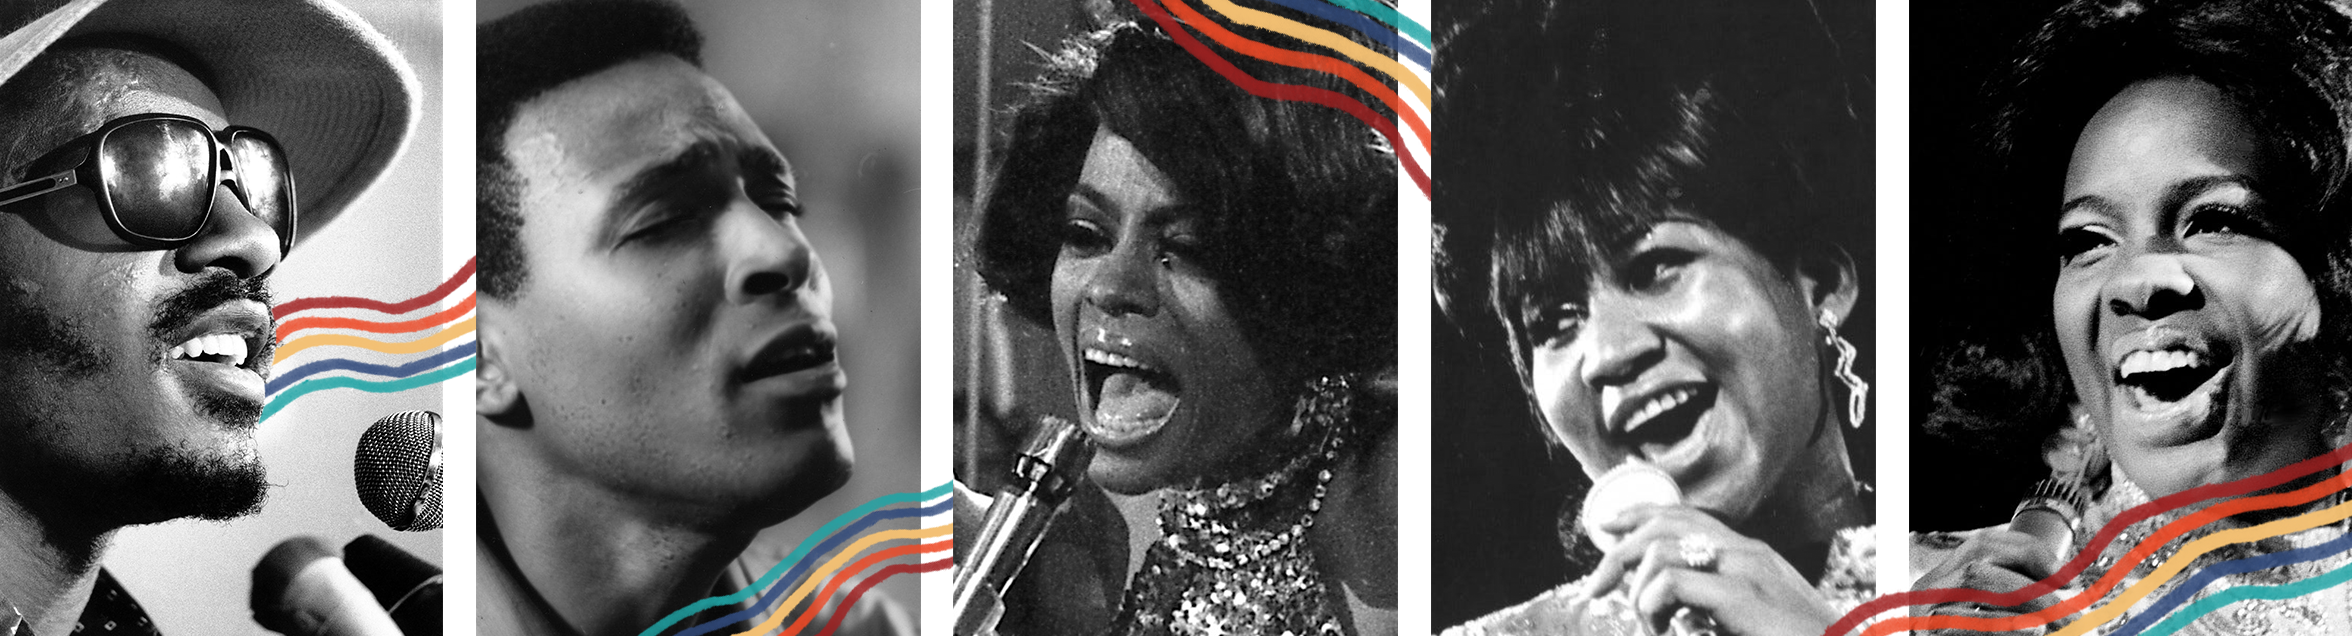 Stevie Wonder, Marvin Gaye, Diana Ross, Aretha Franklin and Gladys Knight are products of Motown.